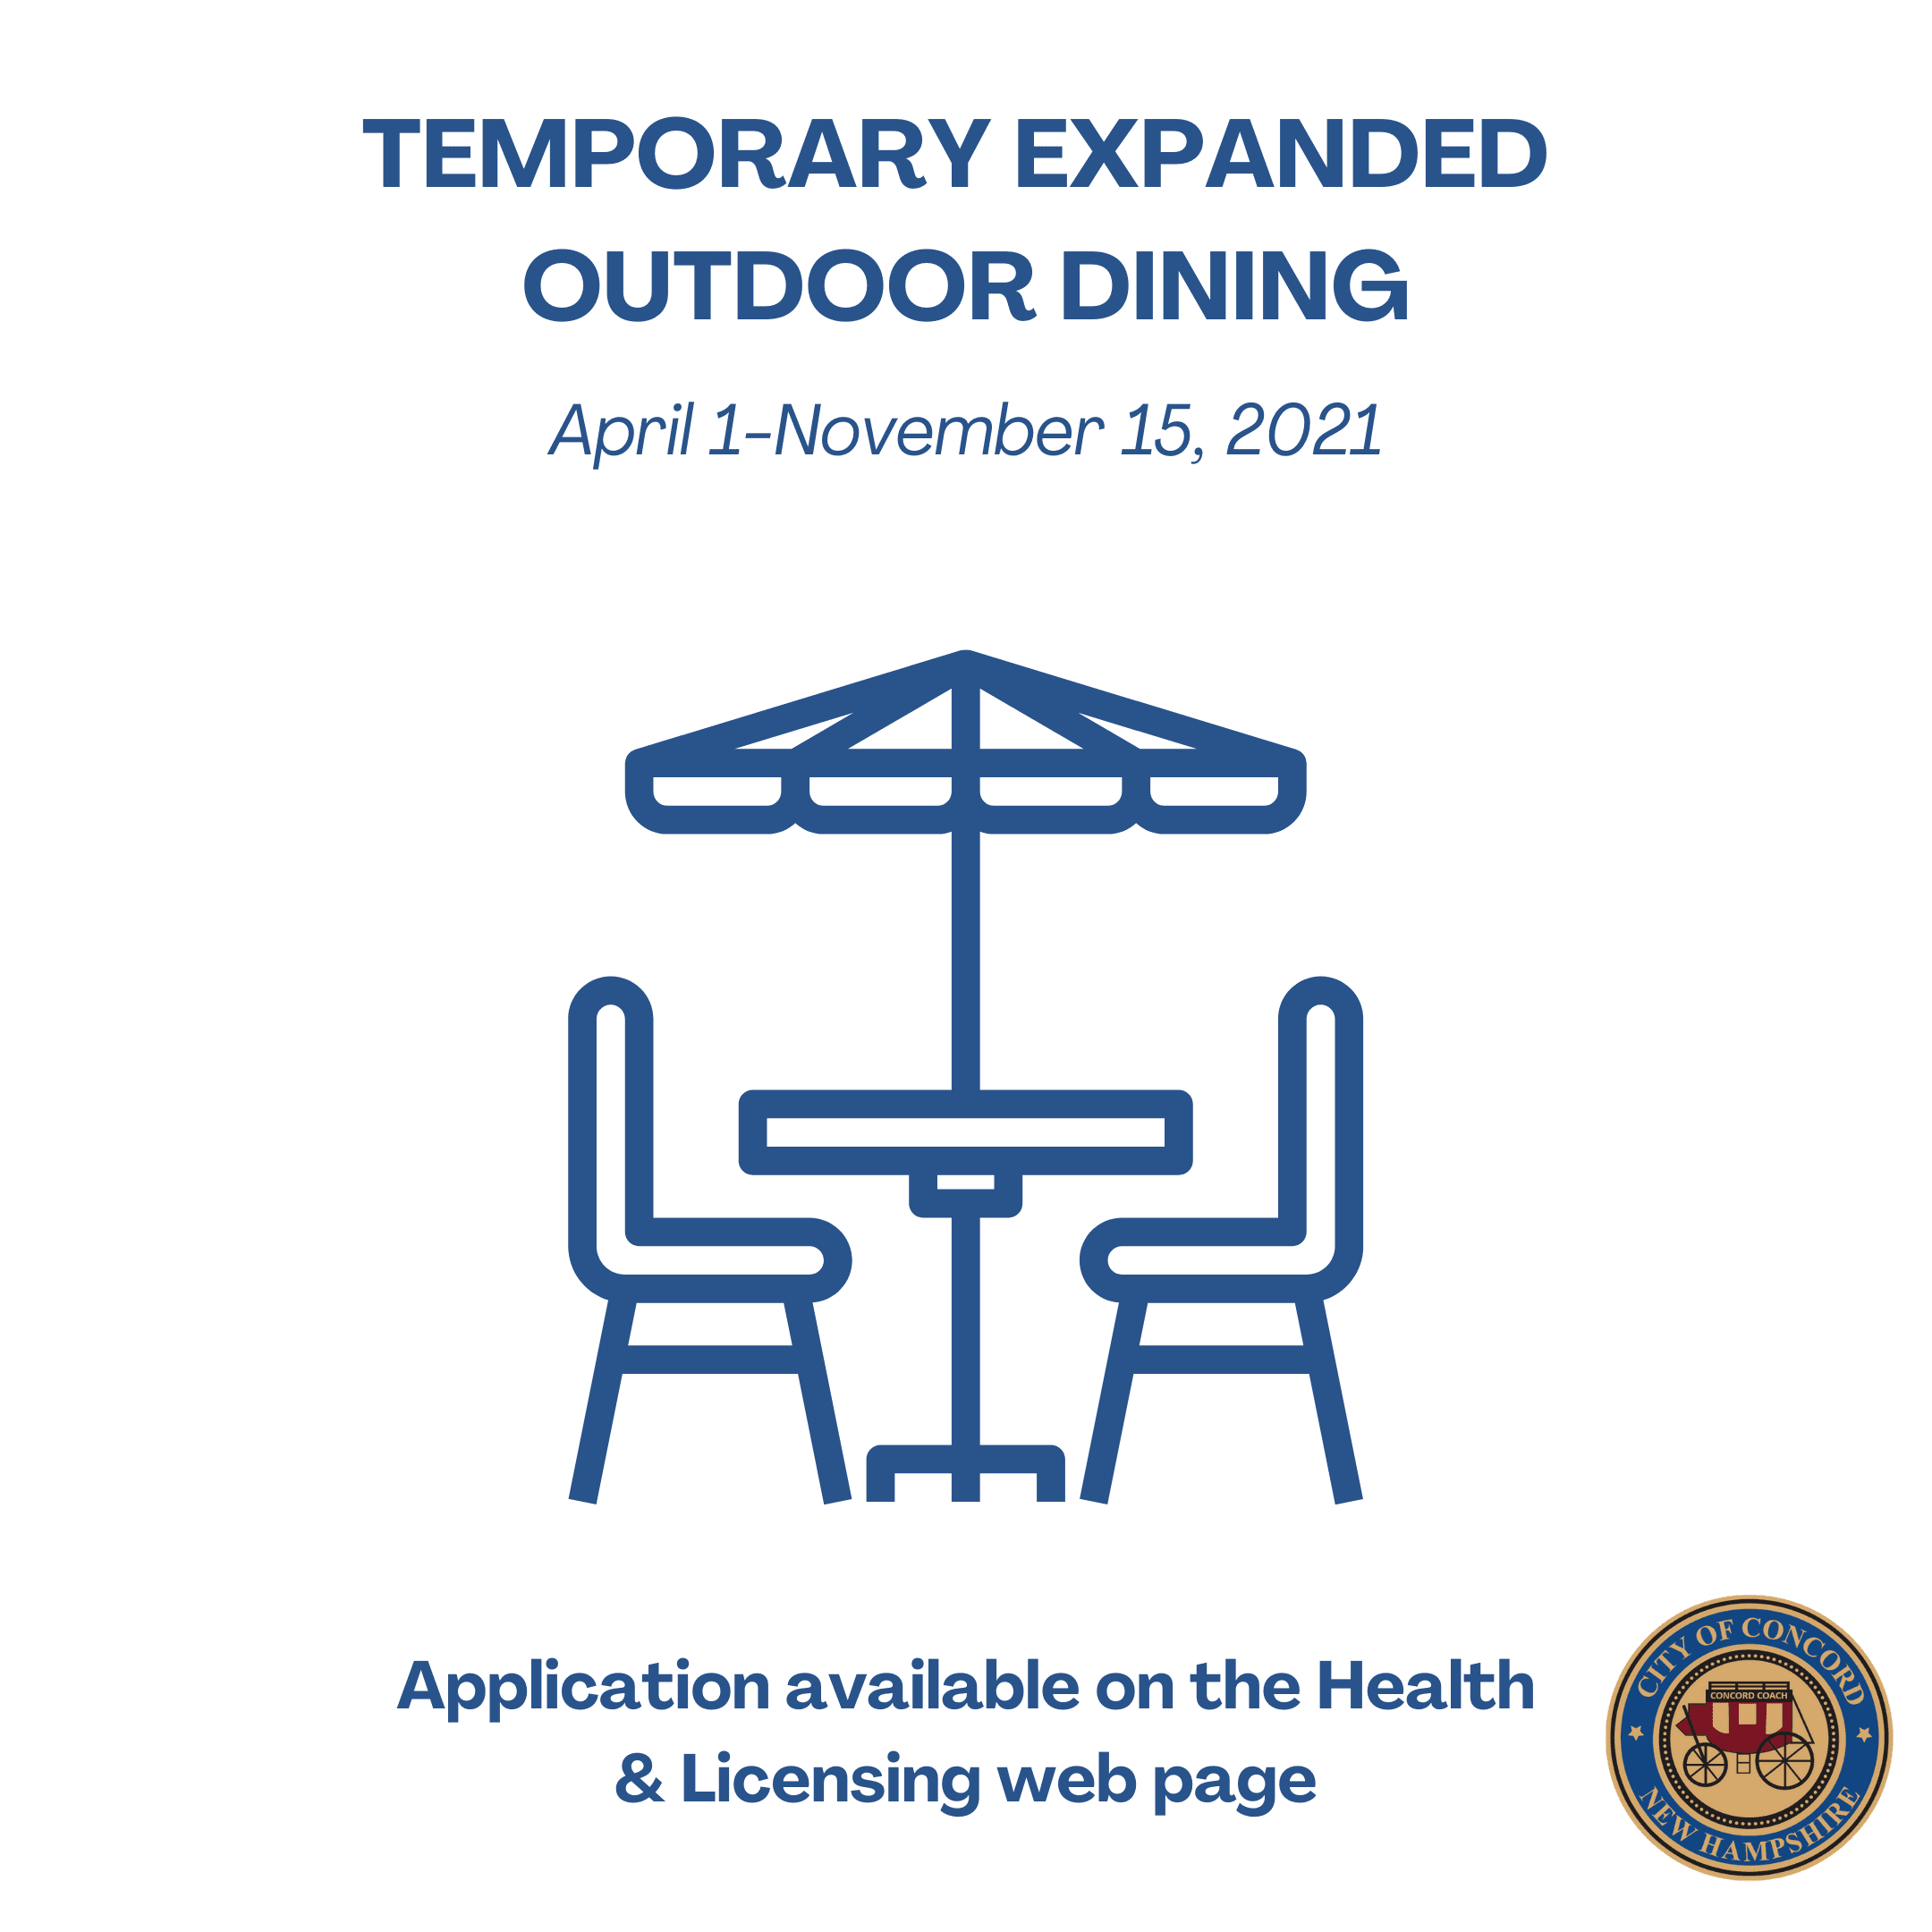 Temporary expanded outdoor dining-news flash